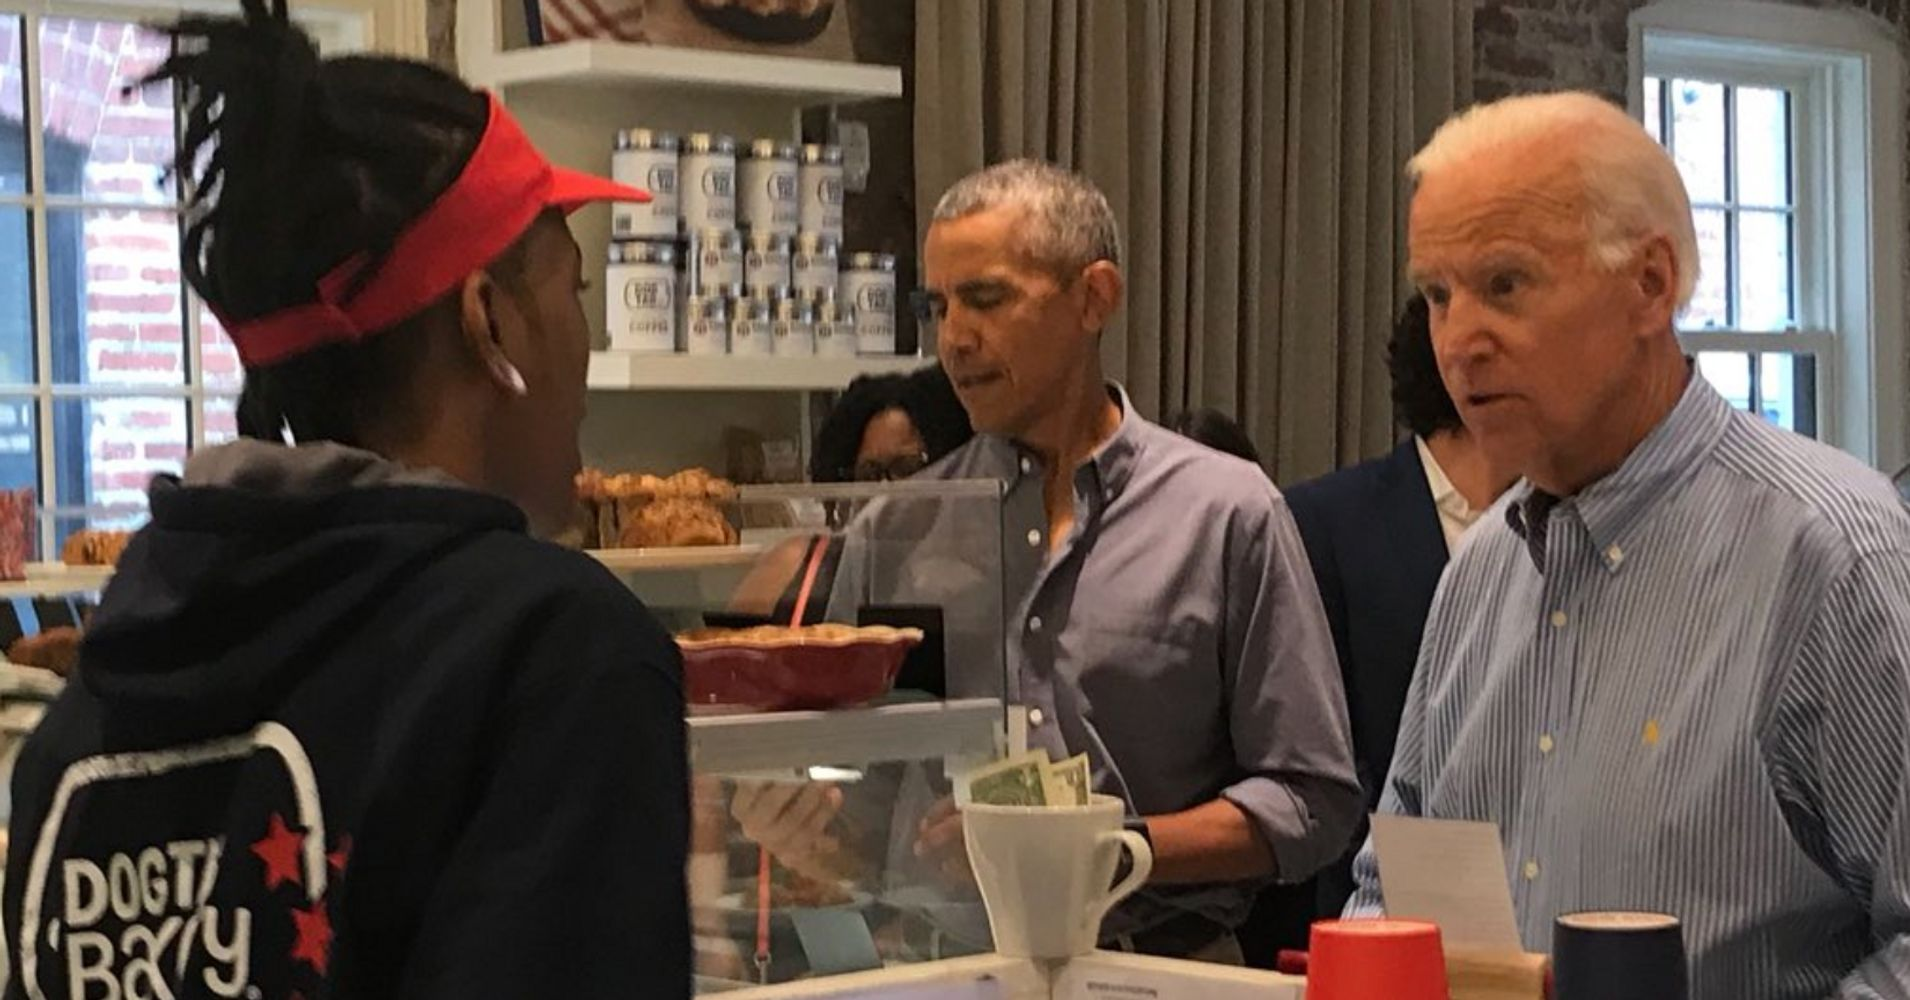 Obama And Biden Reunite For Lunch In D.C.